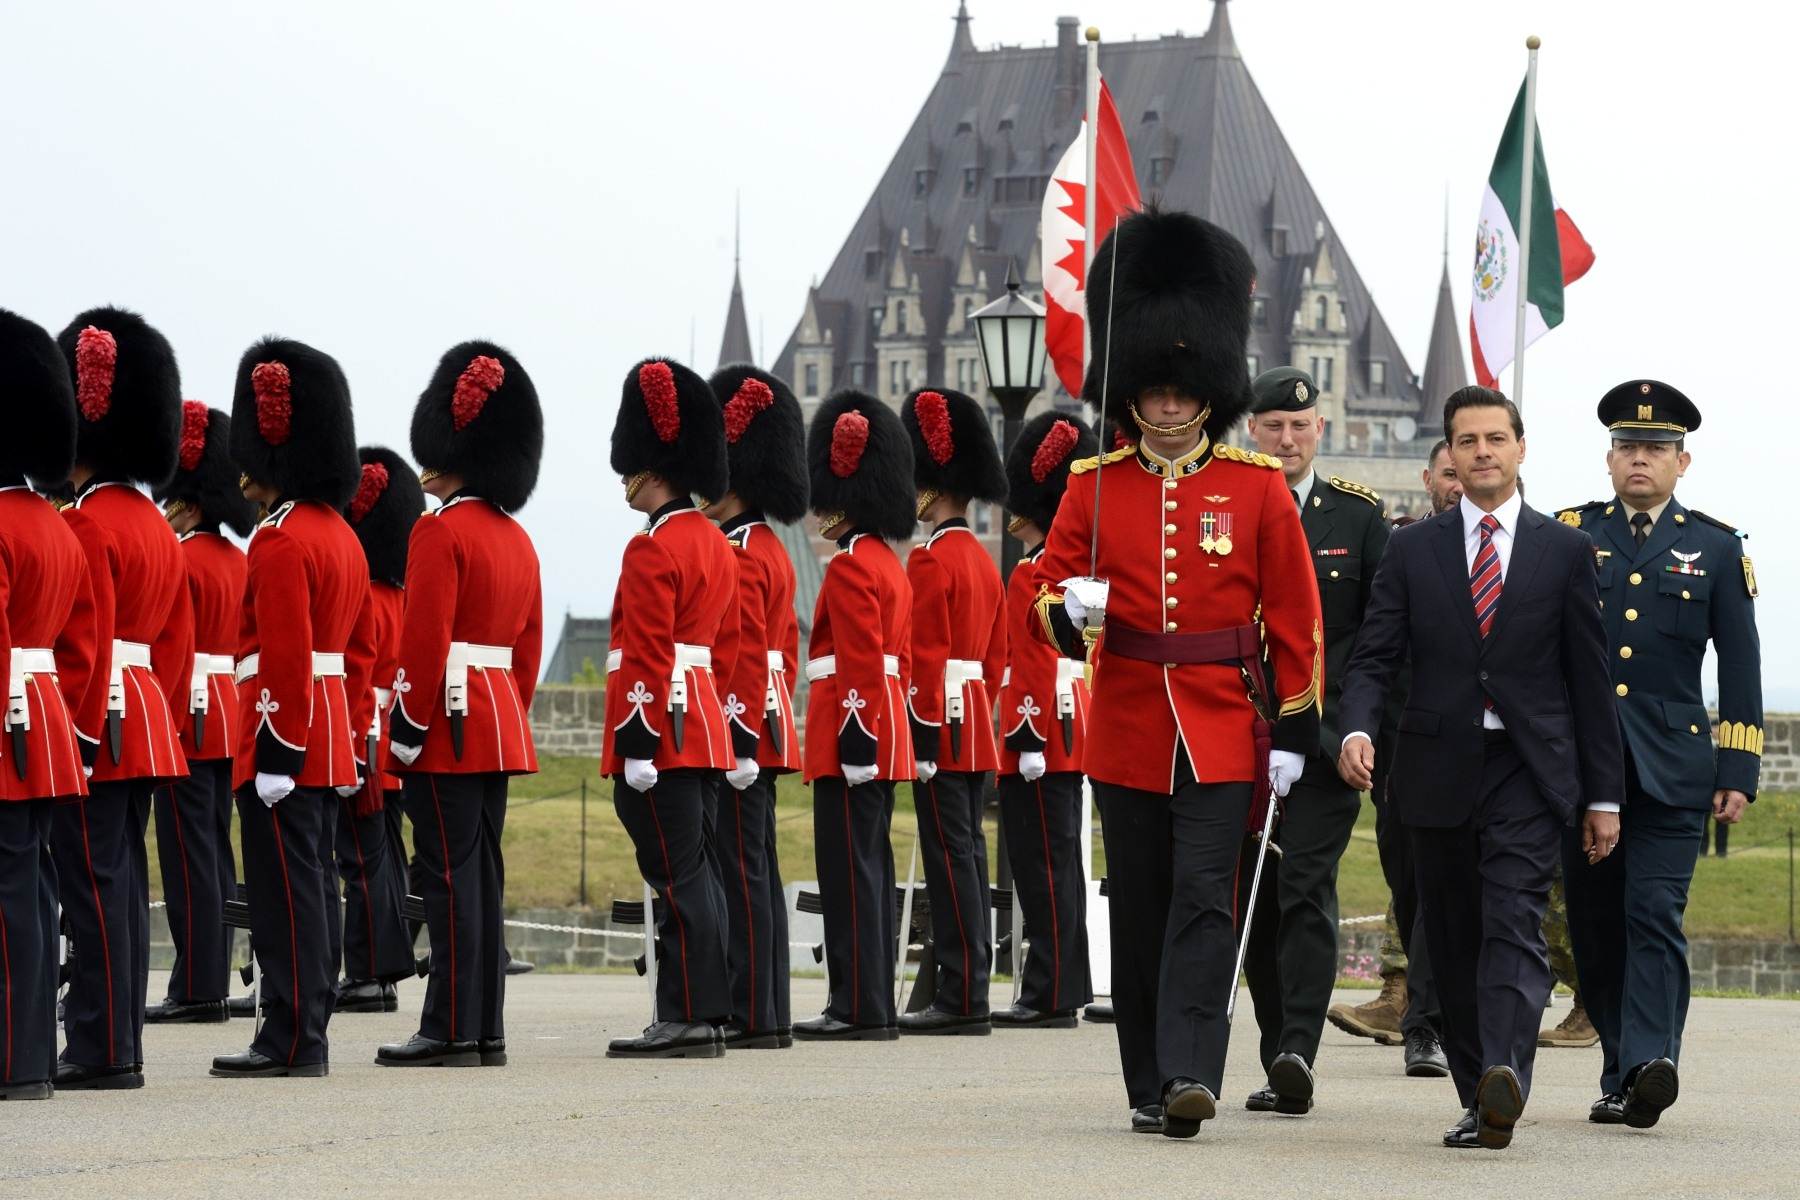 The guard of honour was made up of members of the Red Guard of the Royal 22nd Regiment.